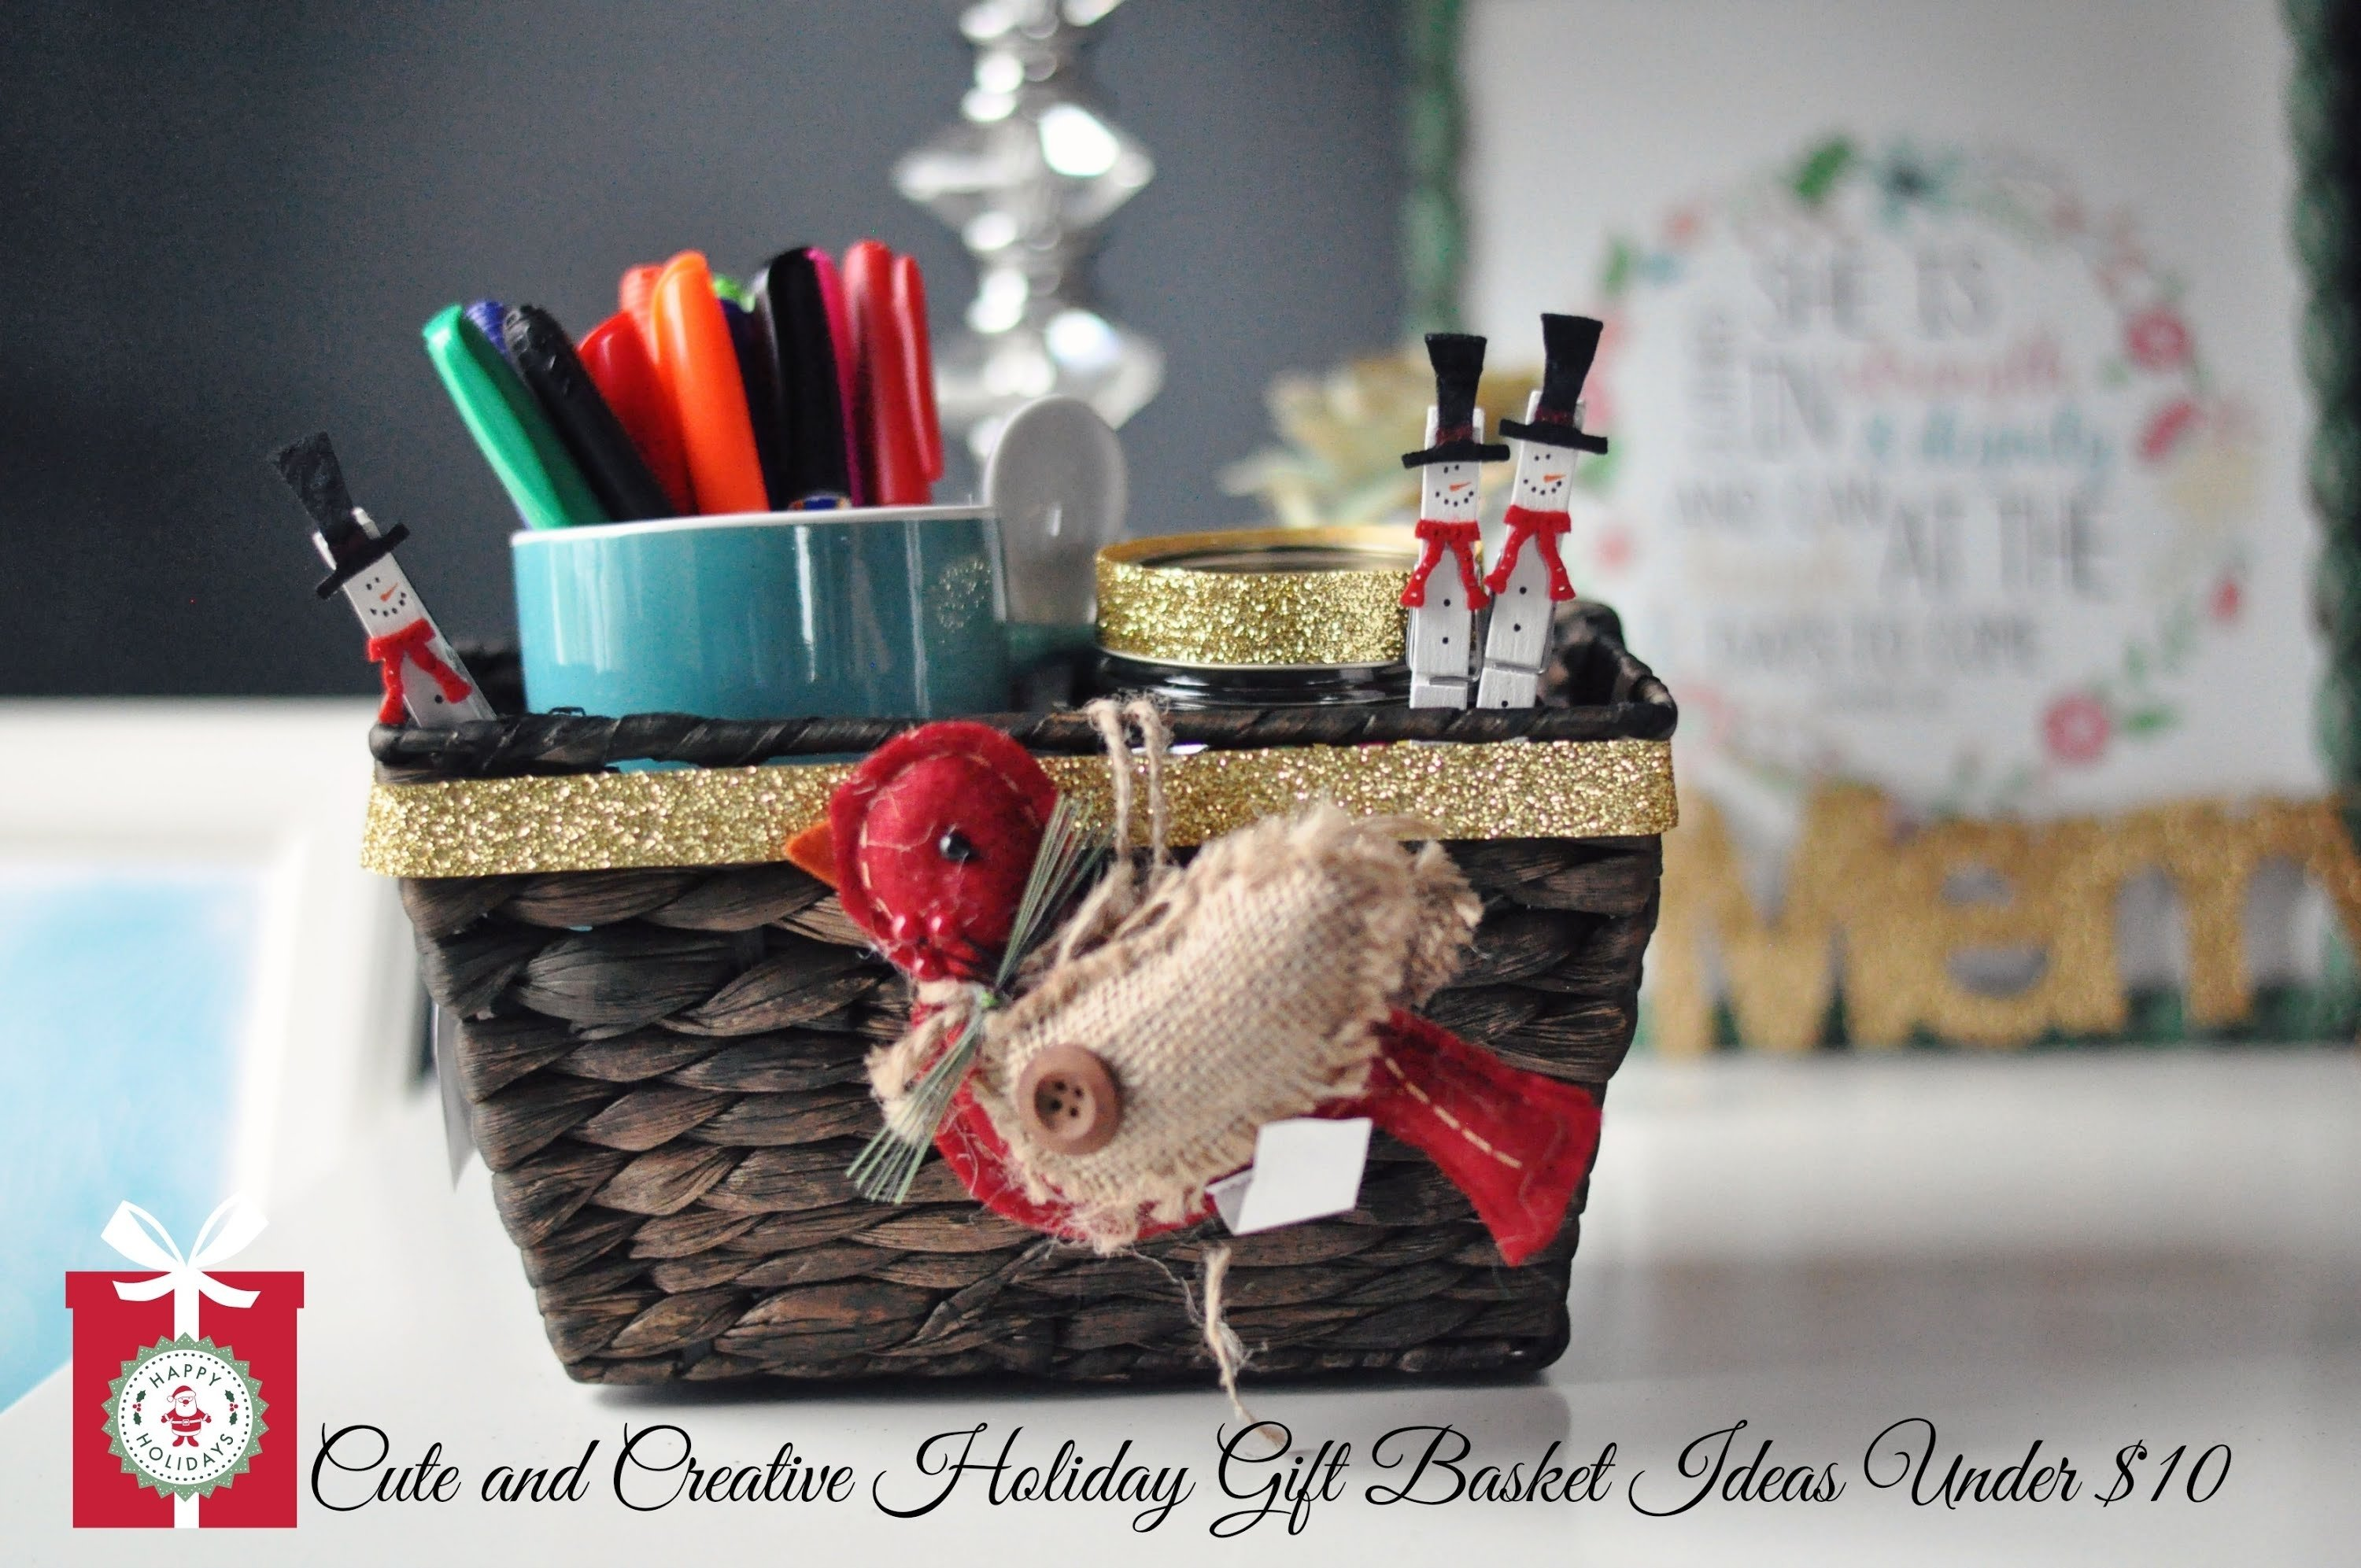 diy christmas gifts: cute & creative holiday gift baskets for under